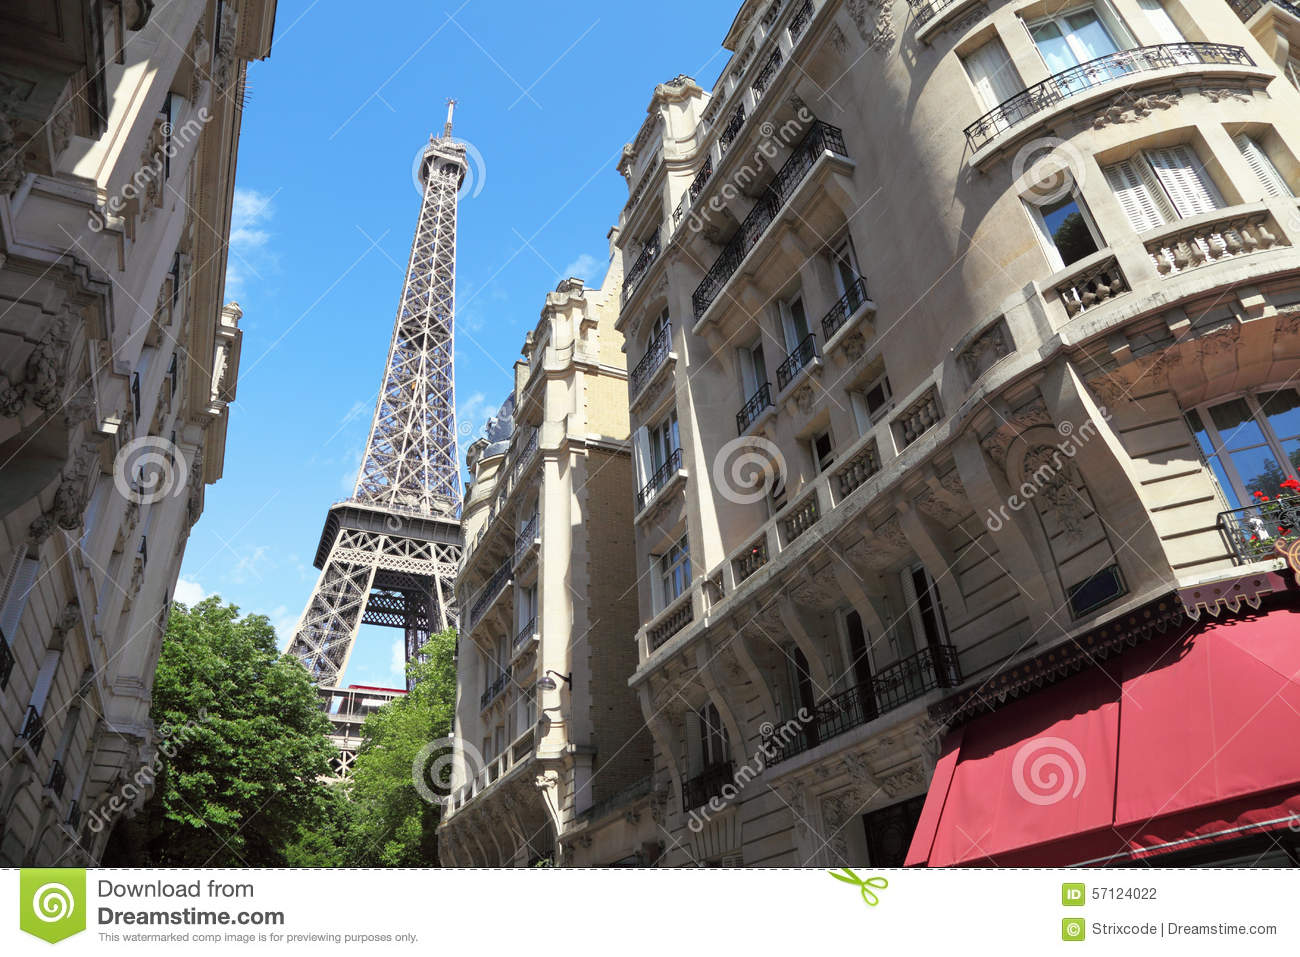 street view on eiffel tower in paris france stock photo image 57124022. Black Bedroom Furniture Sets. Home Design Ideas